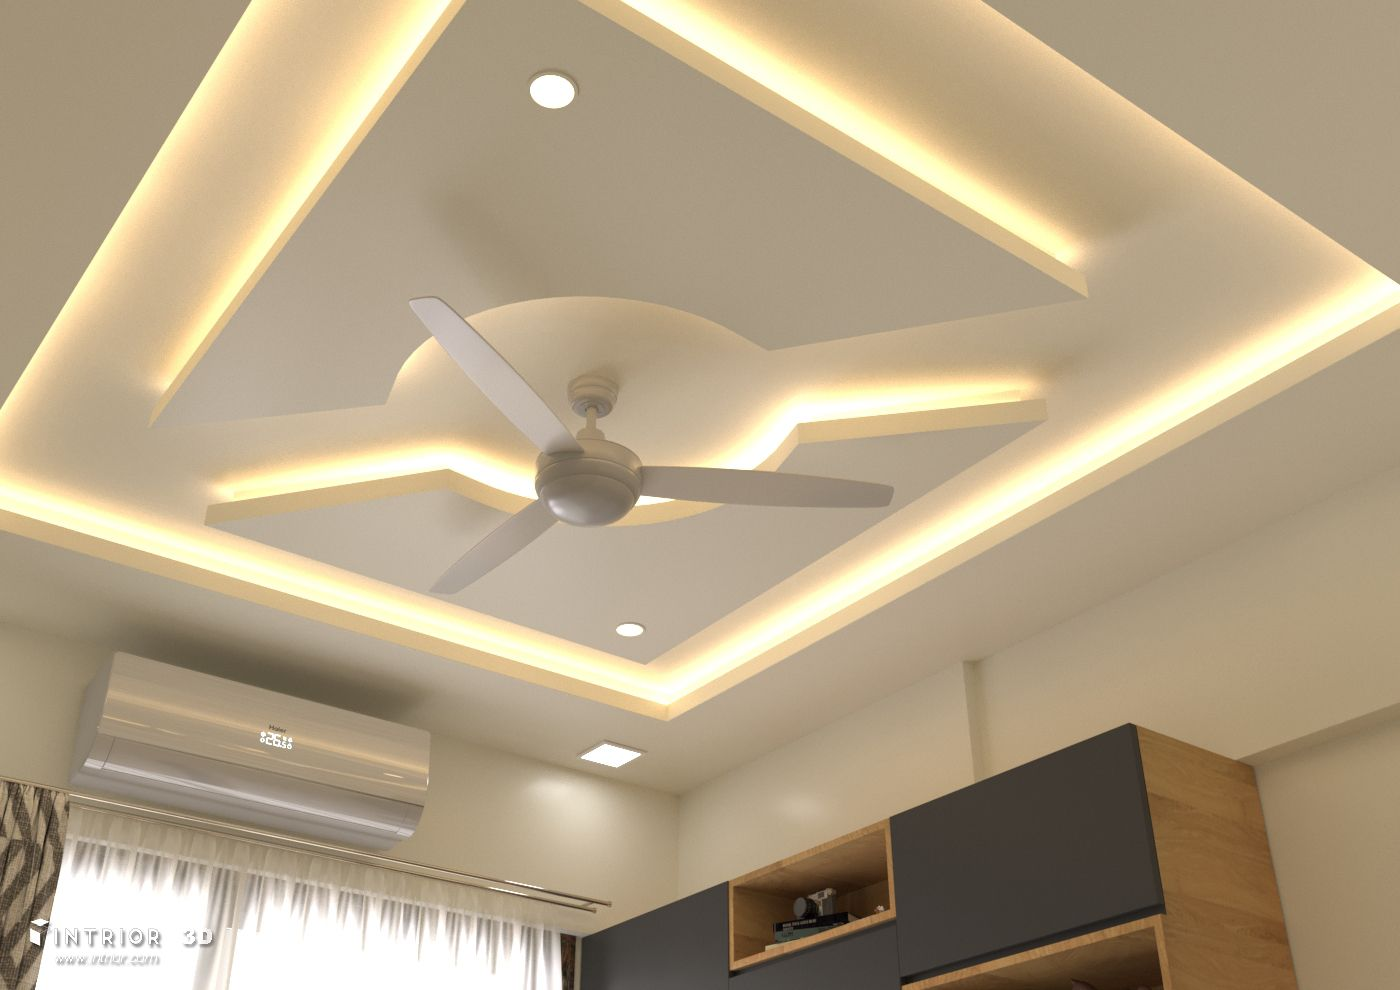 Interiordesign Falseceilingdesign Wardrobedesign